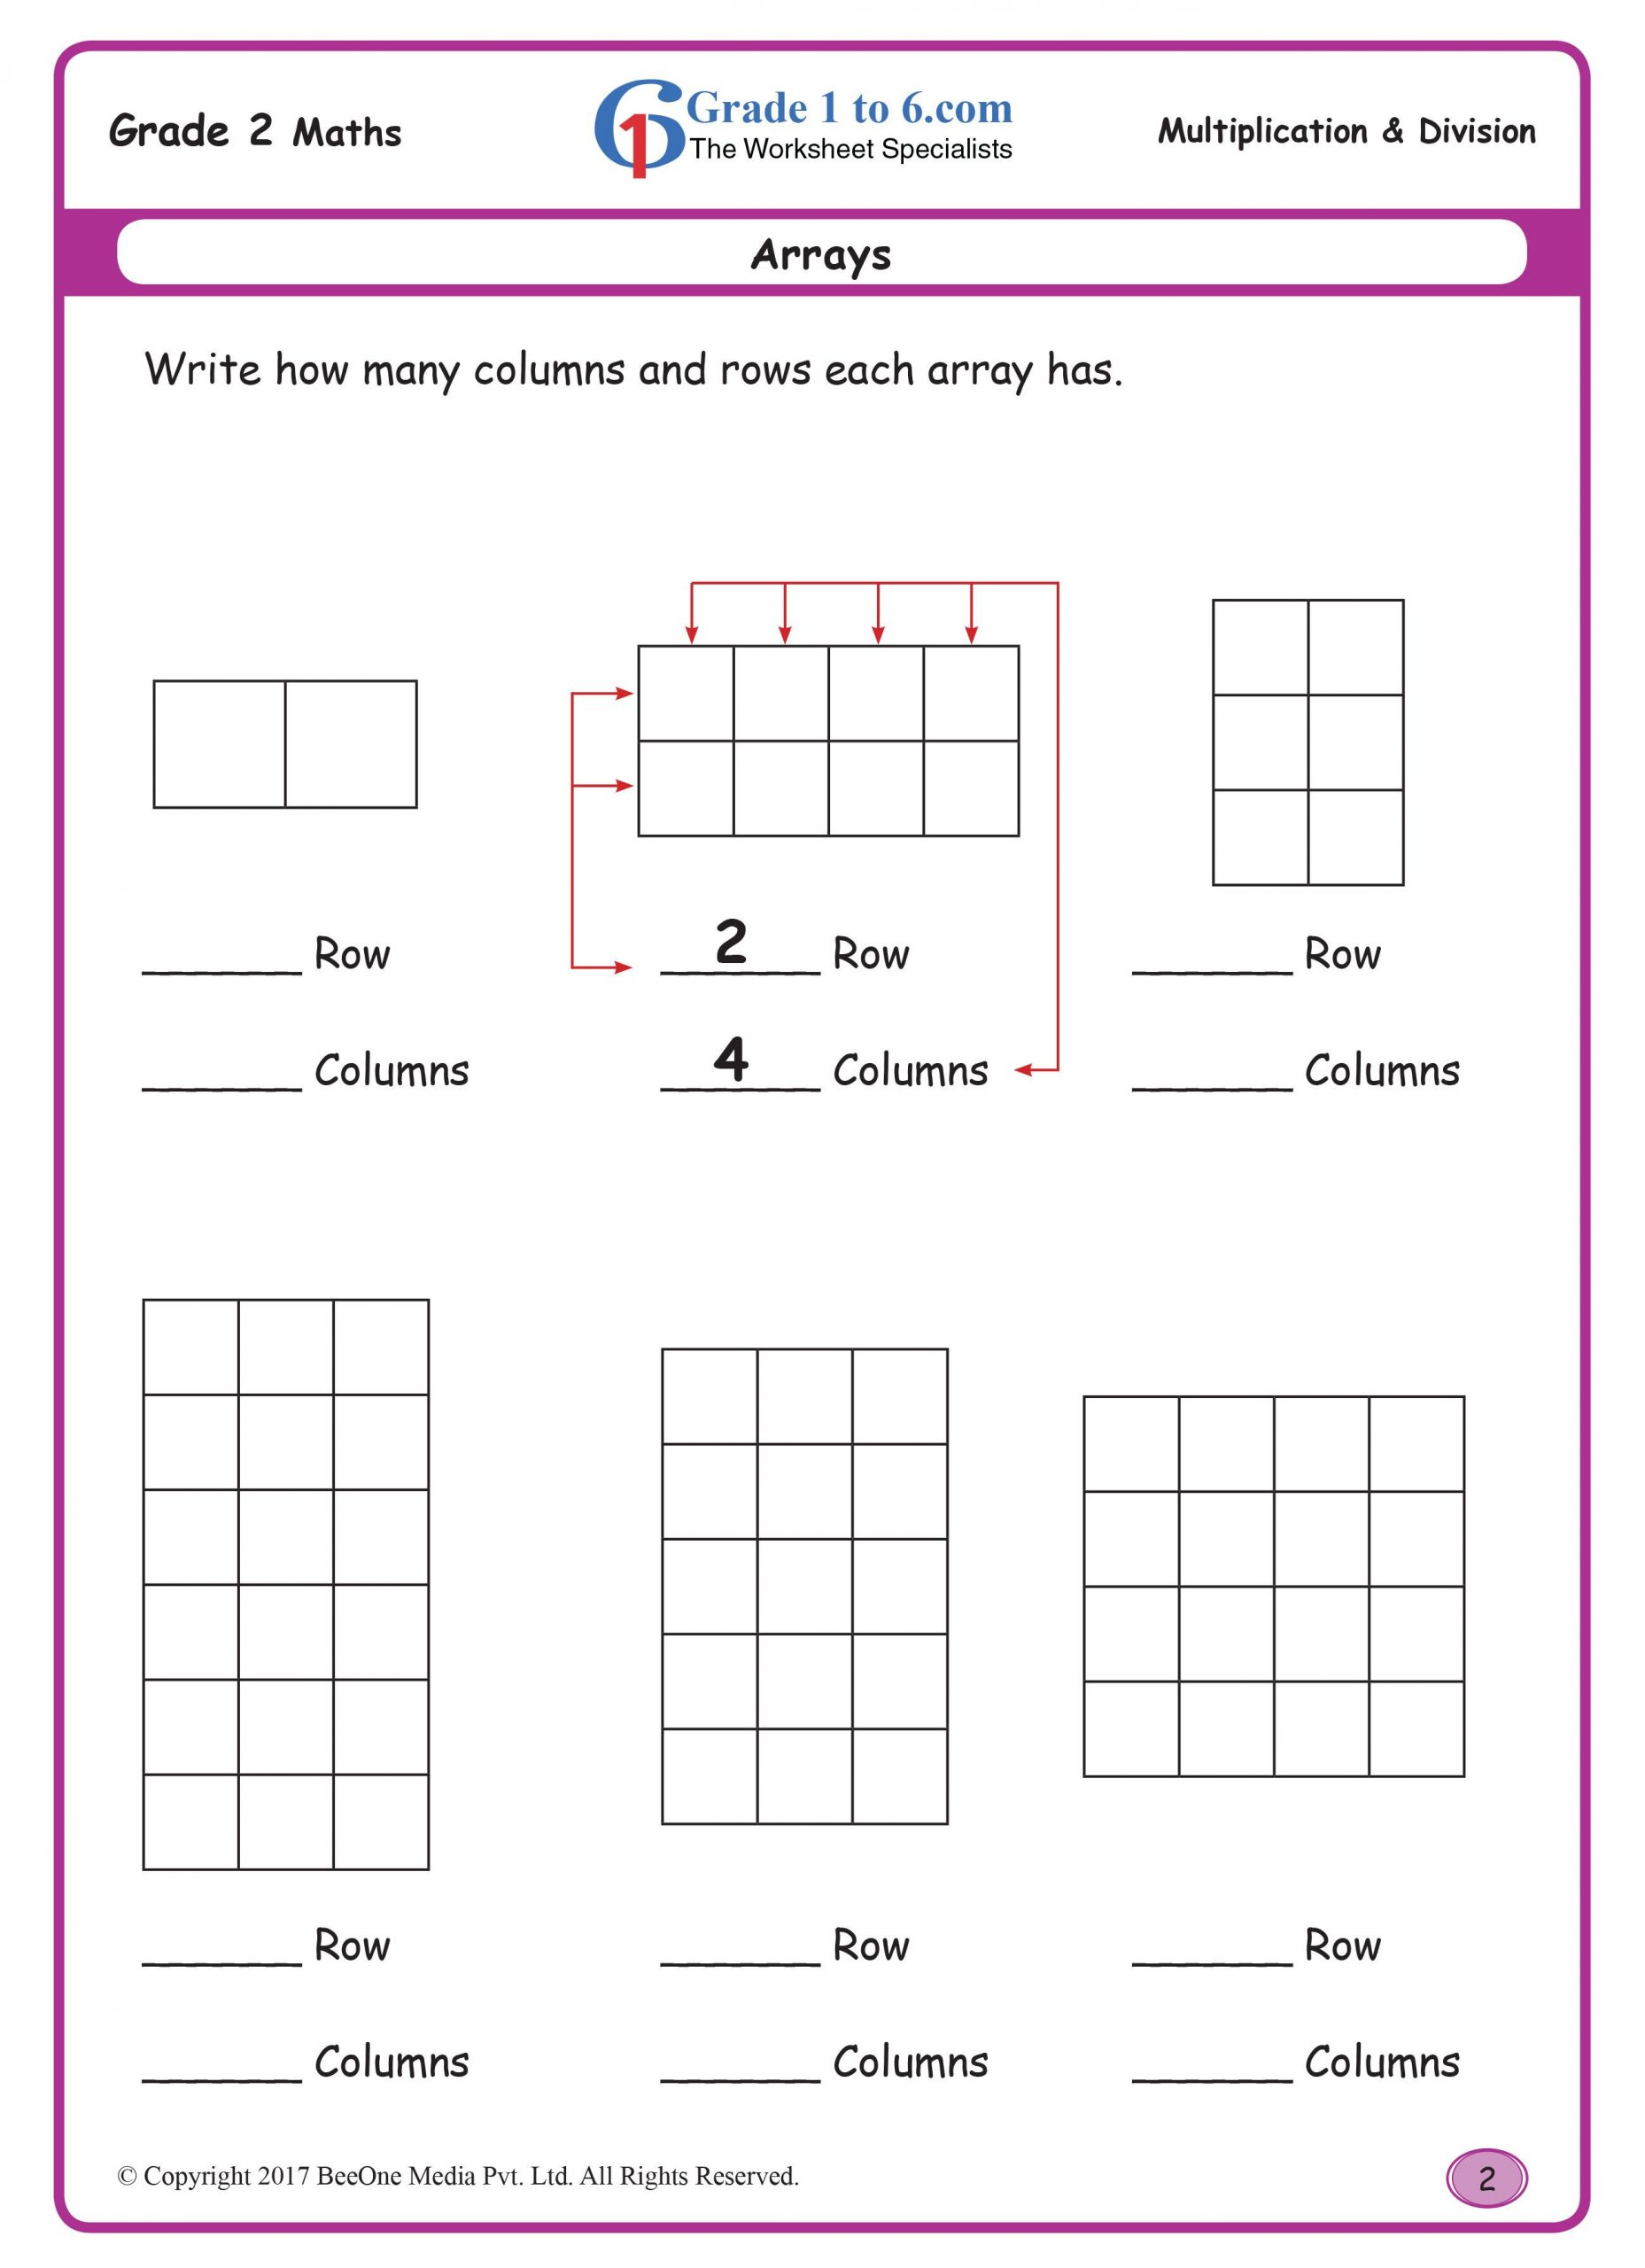 Arrays Worksheets Grade 2 Arrays Buy the Entire E Workbook Of 300 Plus Pages for Just